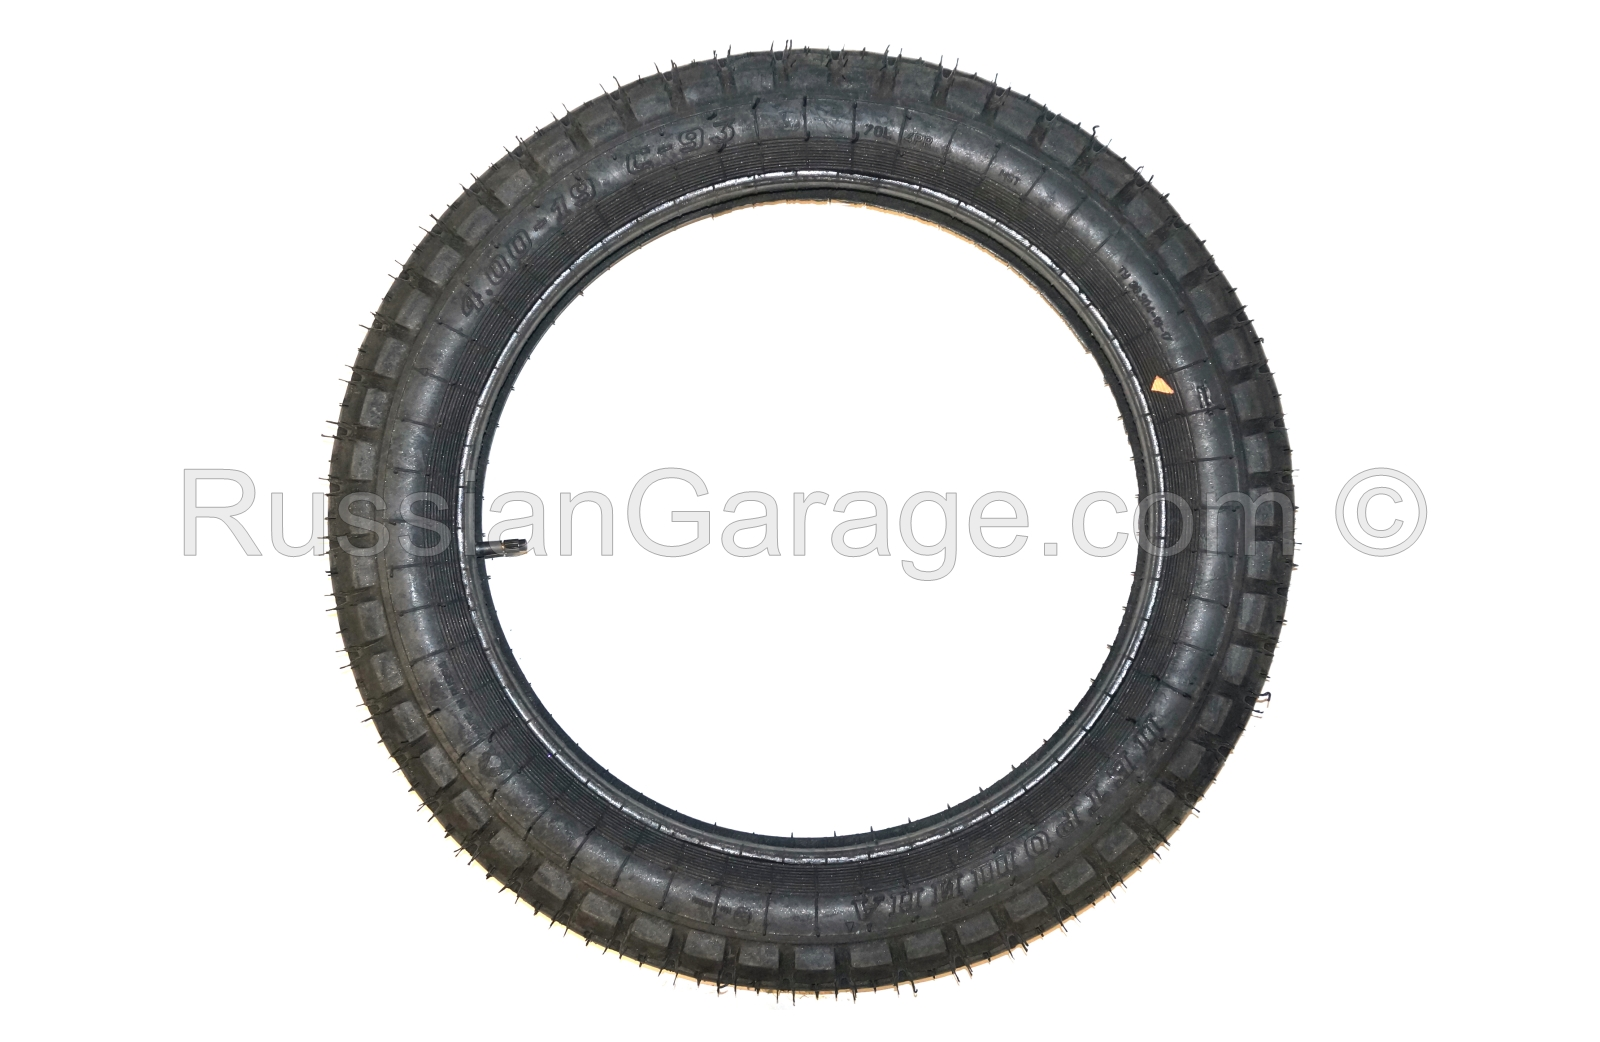 Tire with inner tube 4.00-19